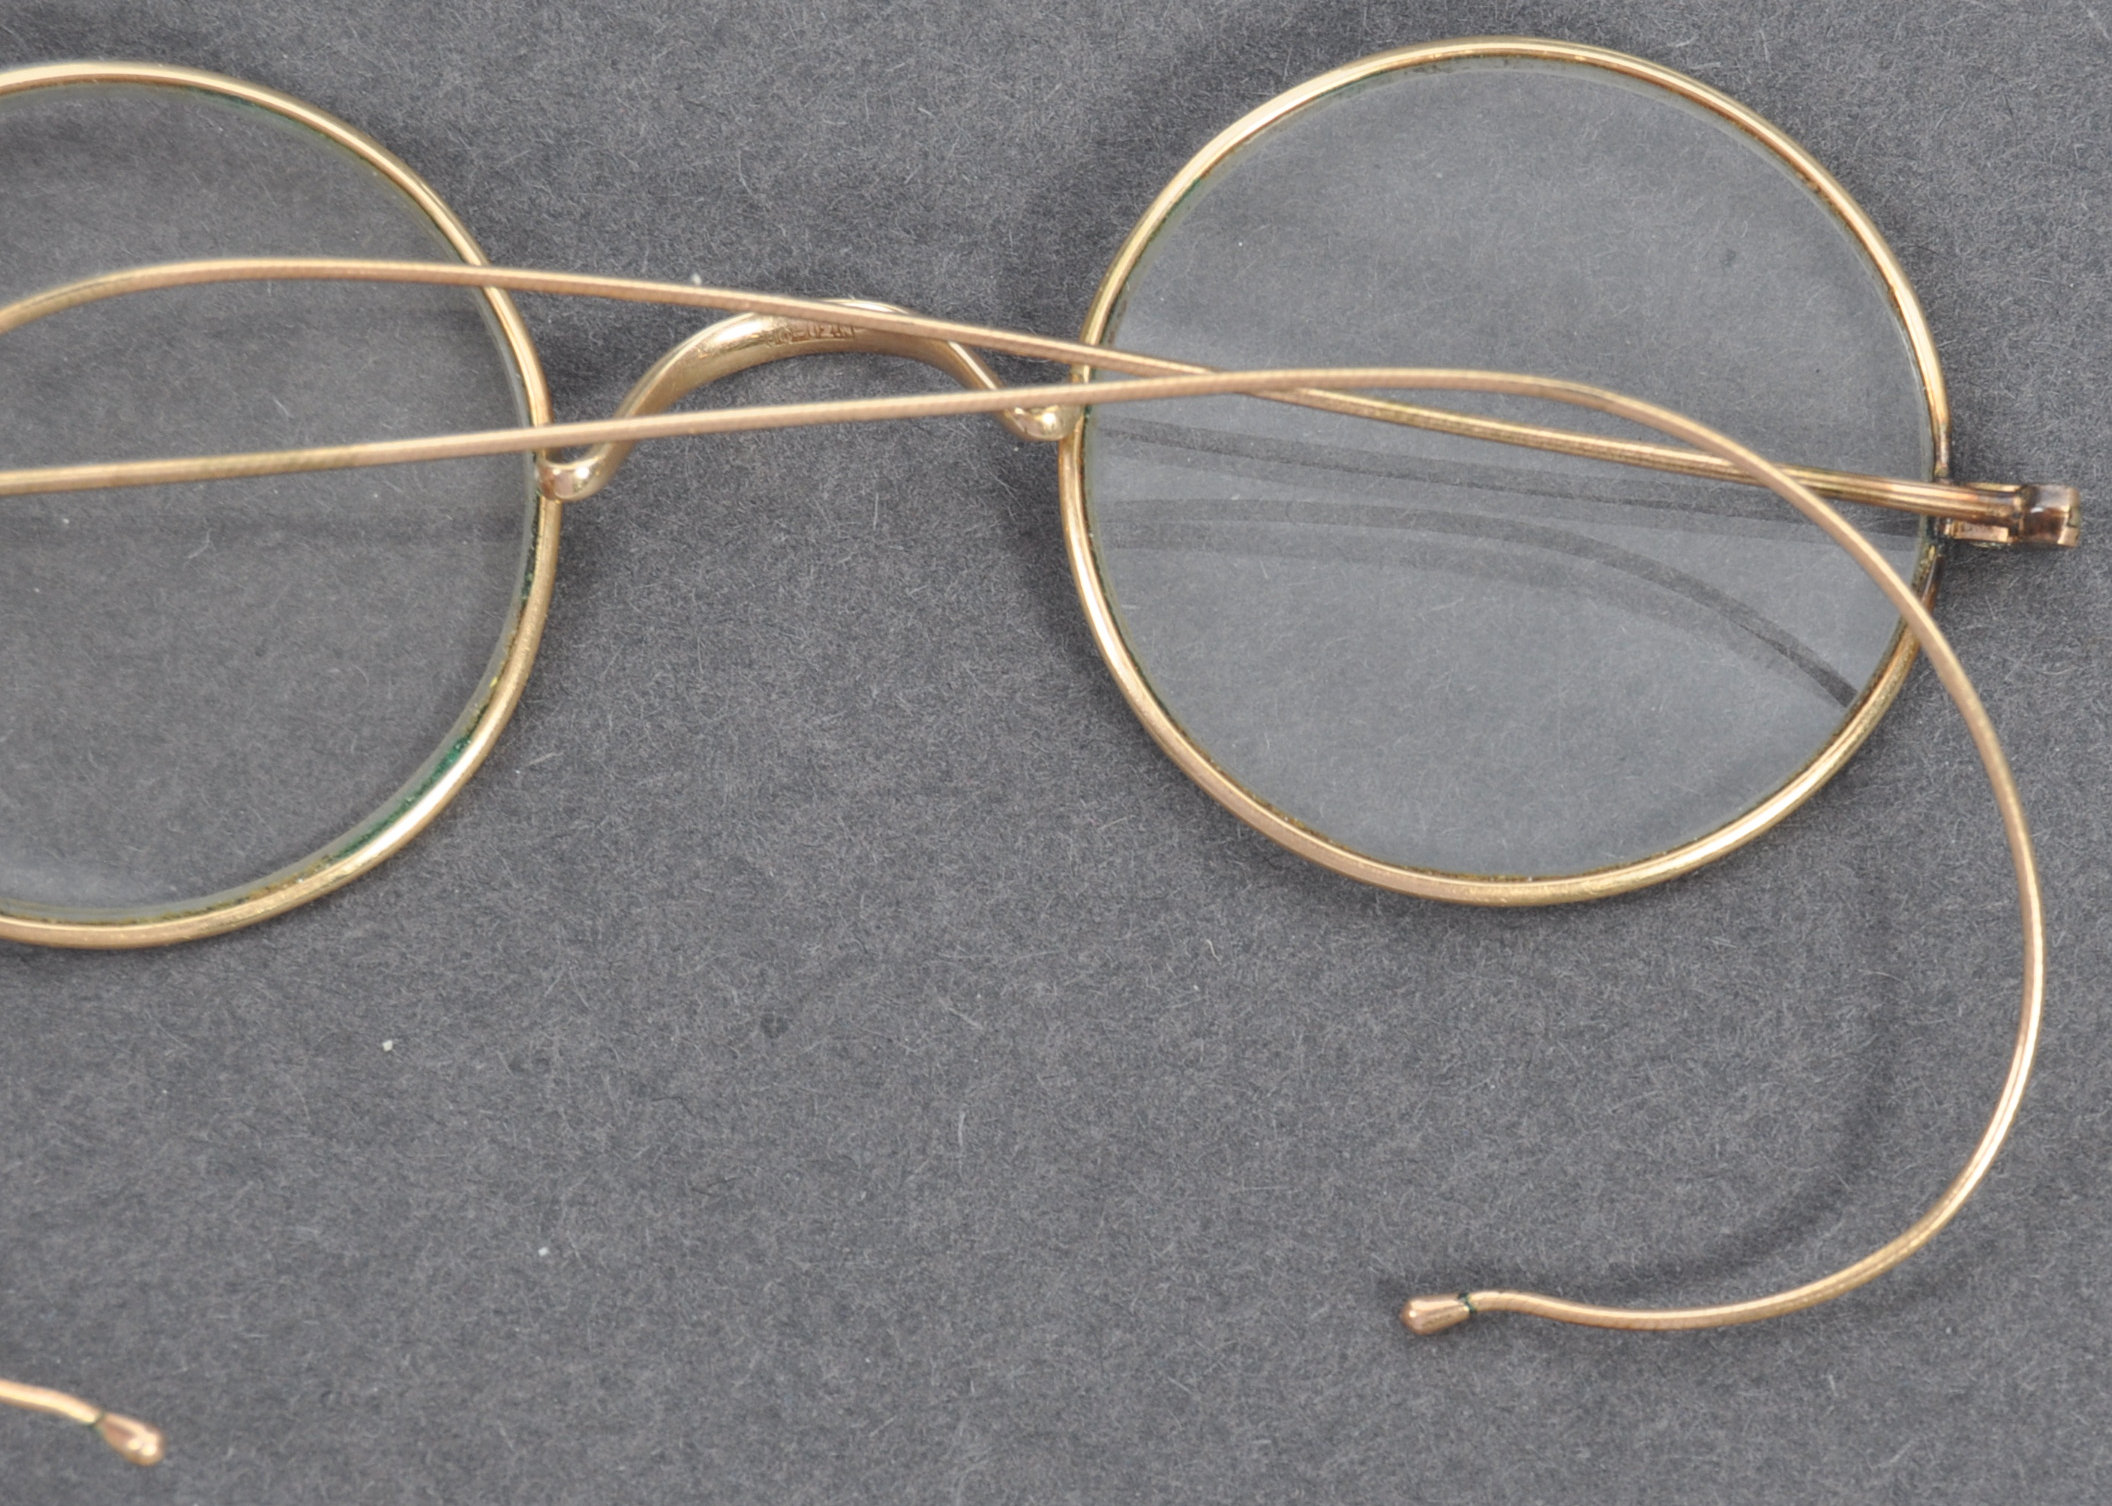 PAIR OF MATHATMA GANDHI'S PERSONAL SPECTACLES - Image 3 of 7